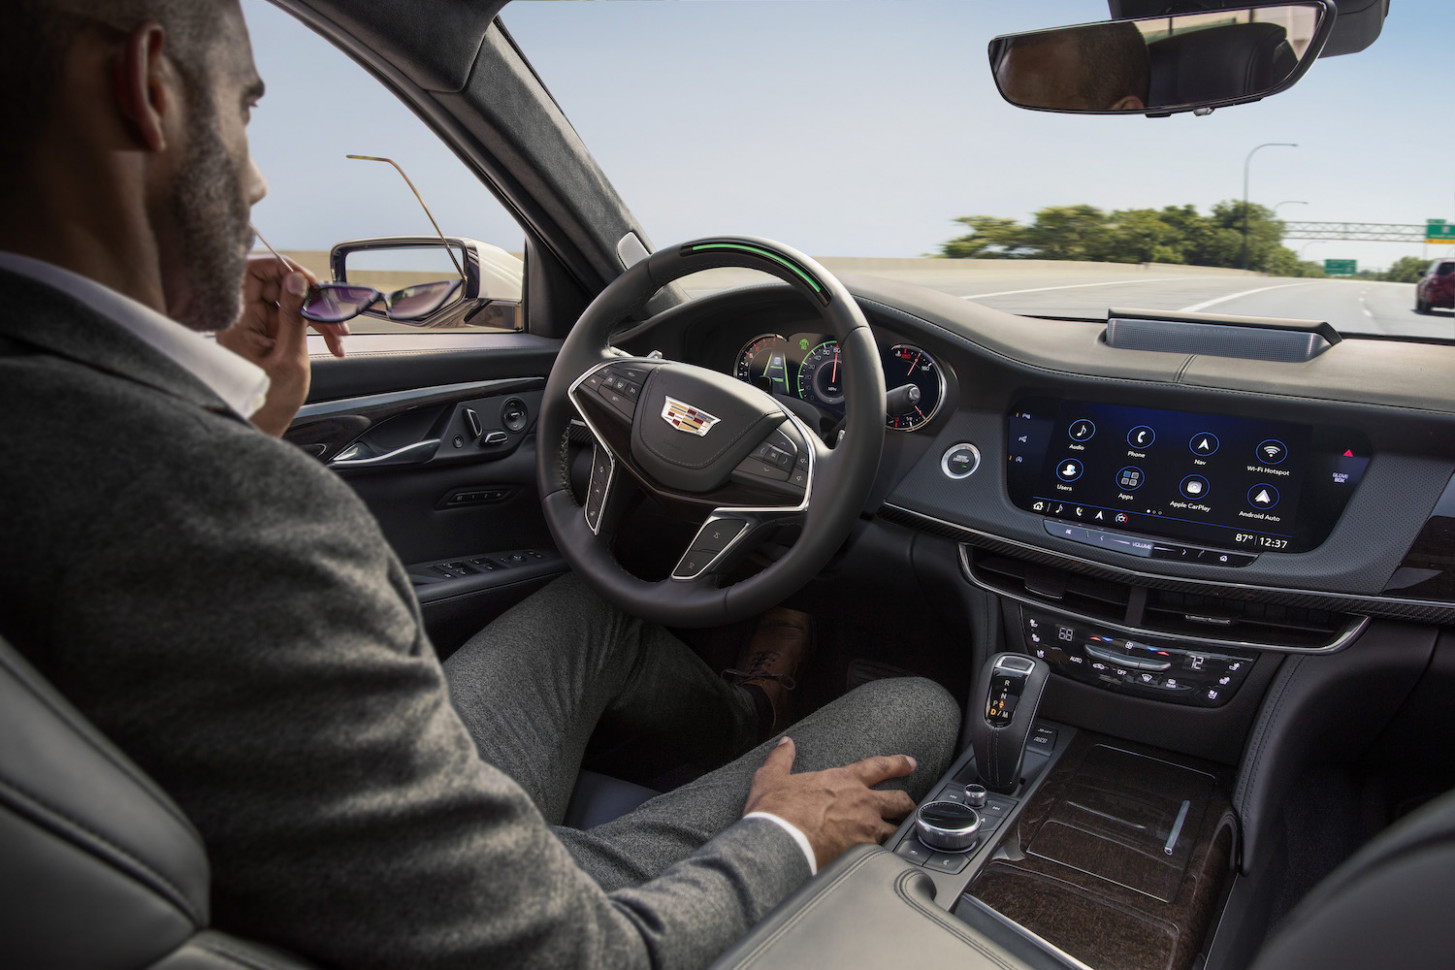 Exterior Cadillac Ct5 To Get Super Cruise In 2022